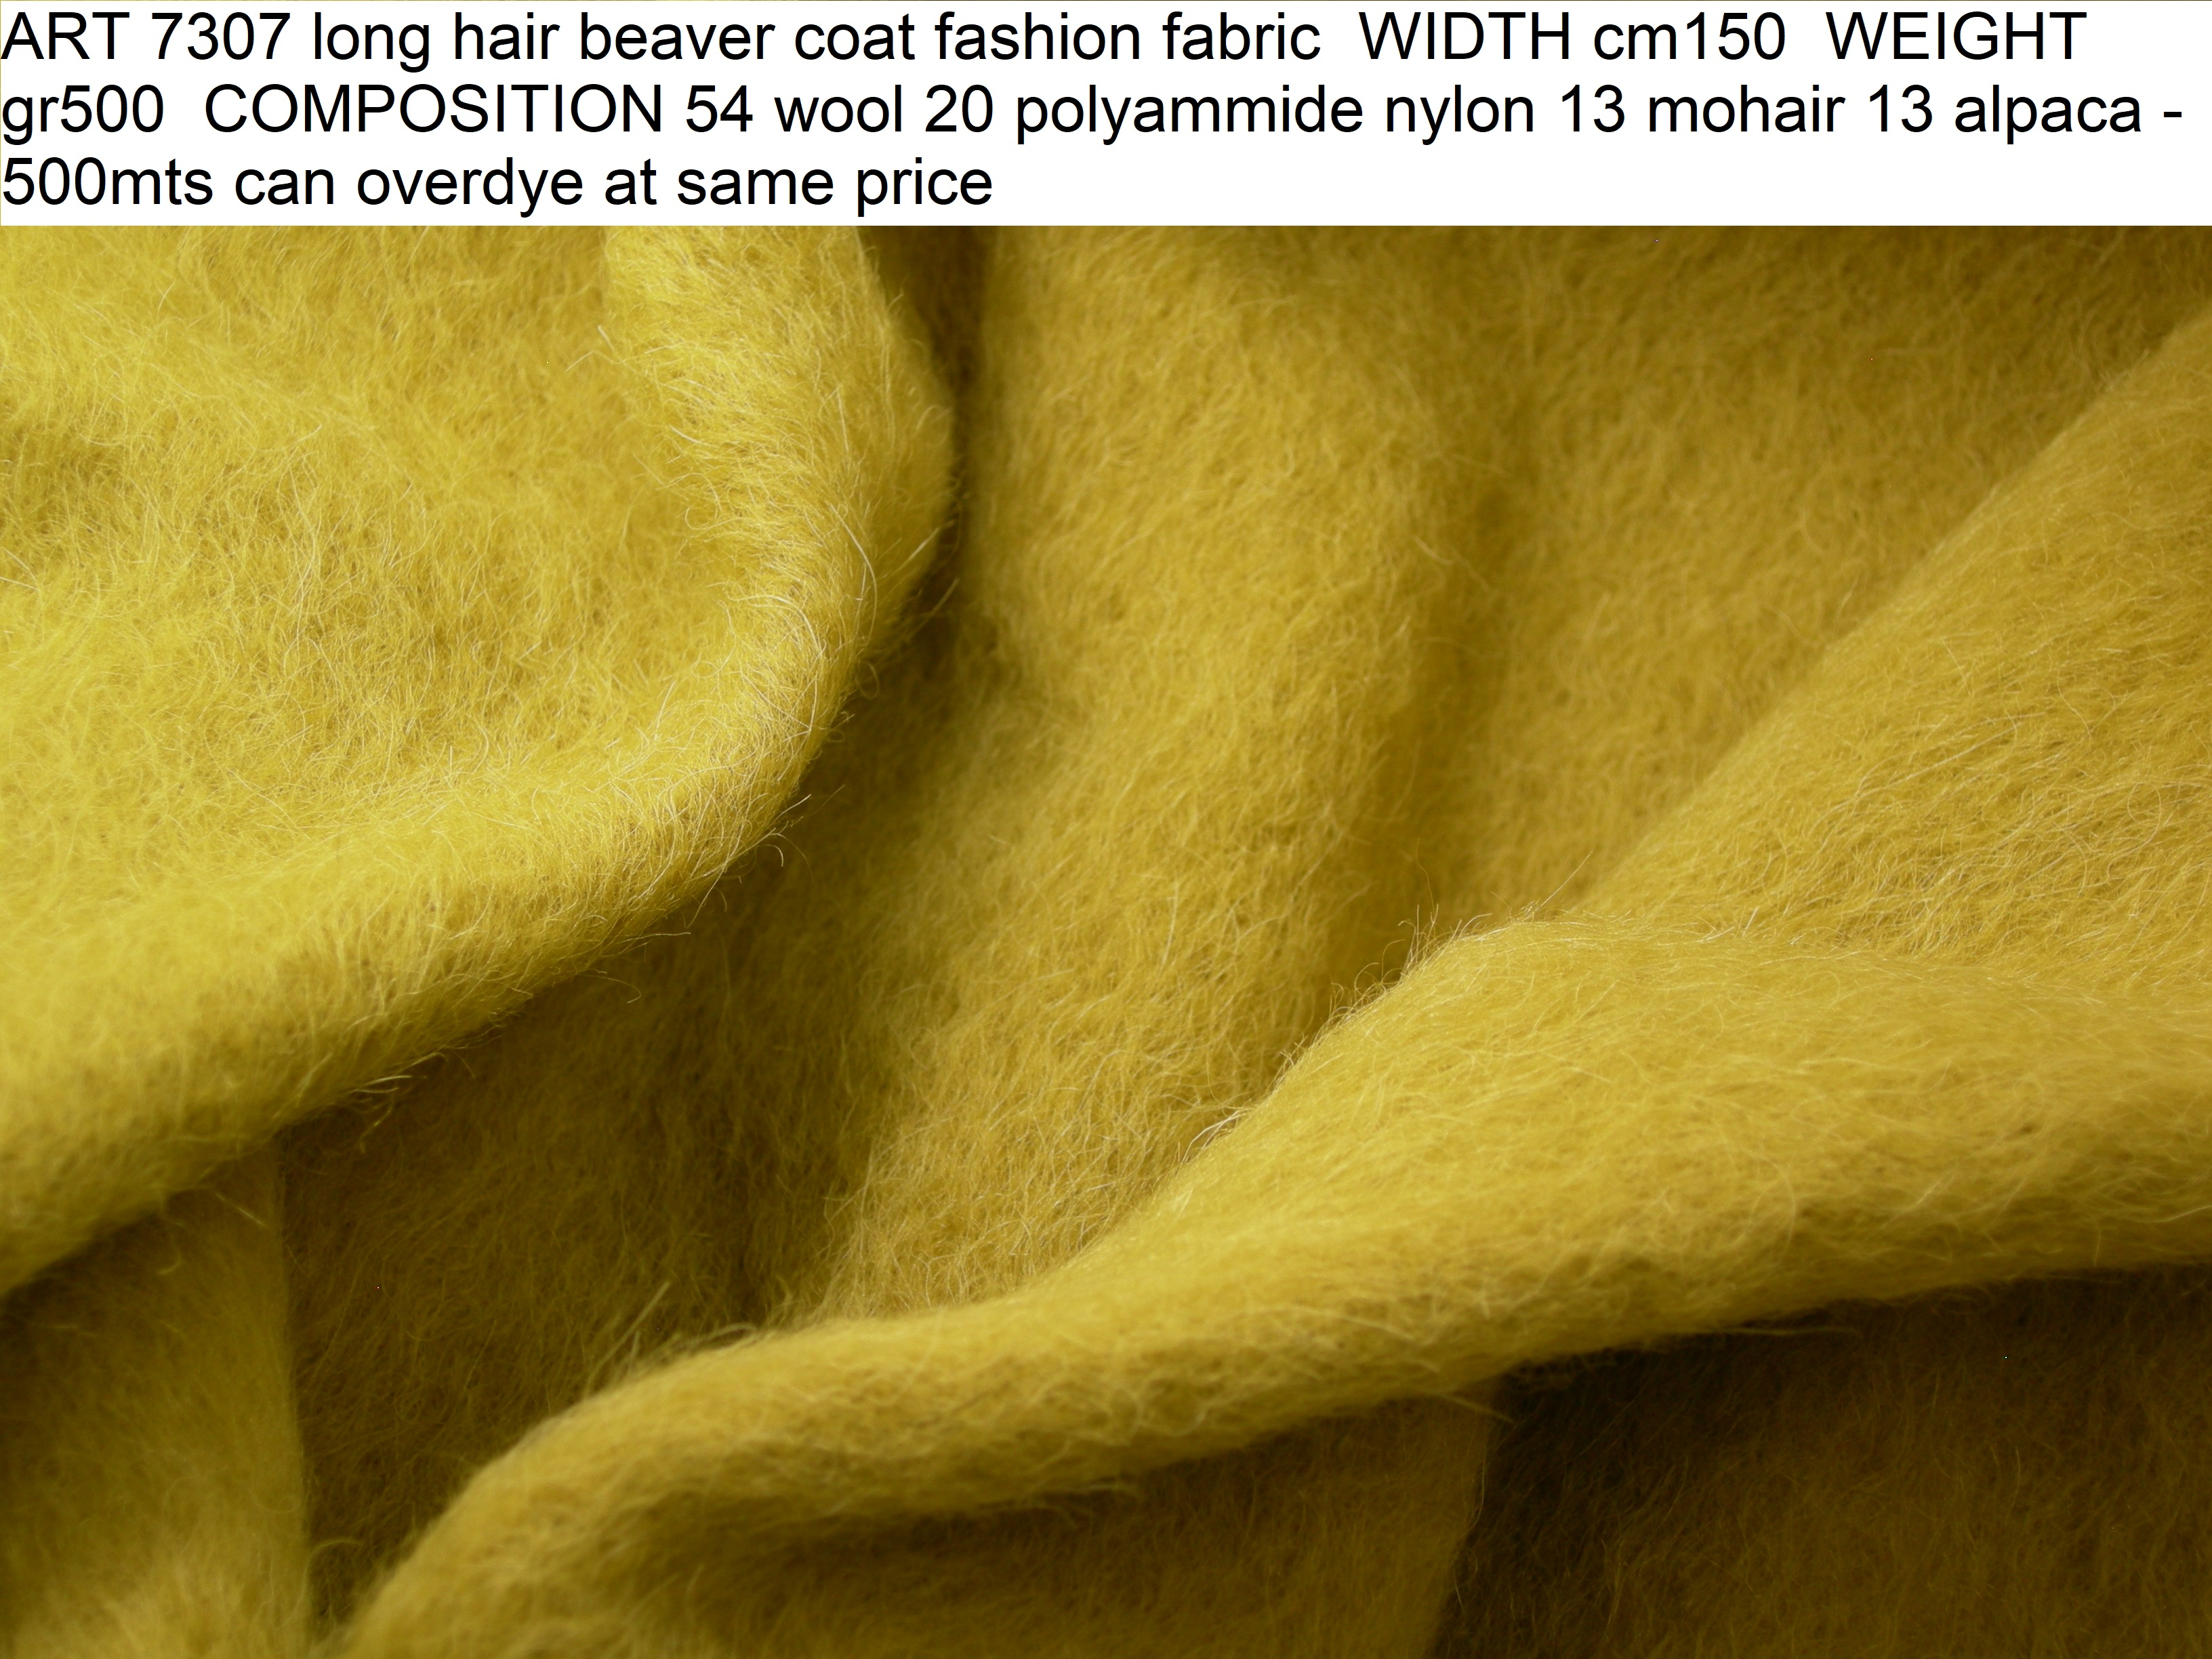 ART 7307 long hair beaver coat fashion fabric WIDTH cm150 WEIGHT gr500 COMPOSITION 54 wool 20 polyammide nylon 13 mohair 13 alpaca - 500mts can overdye at same price